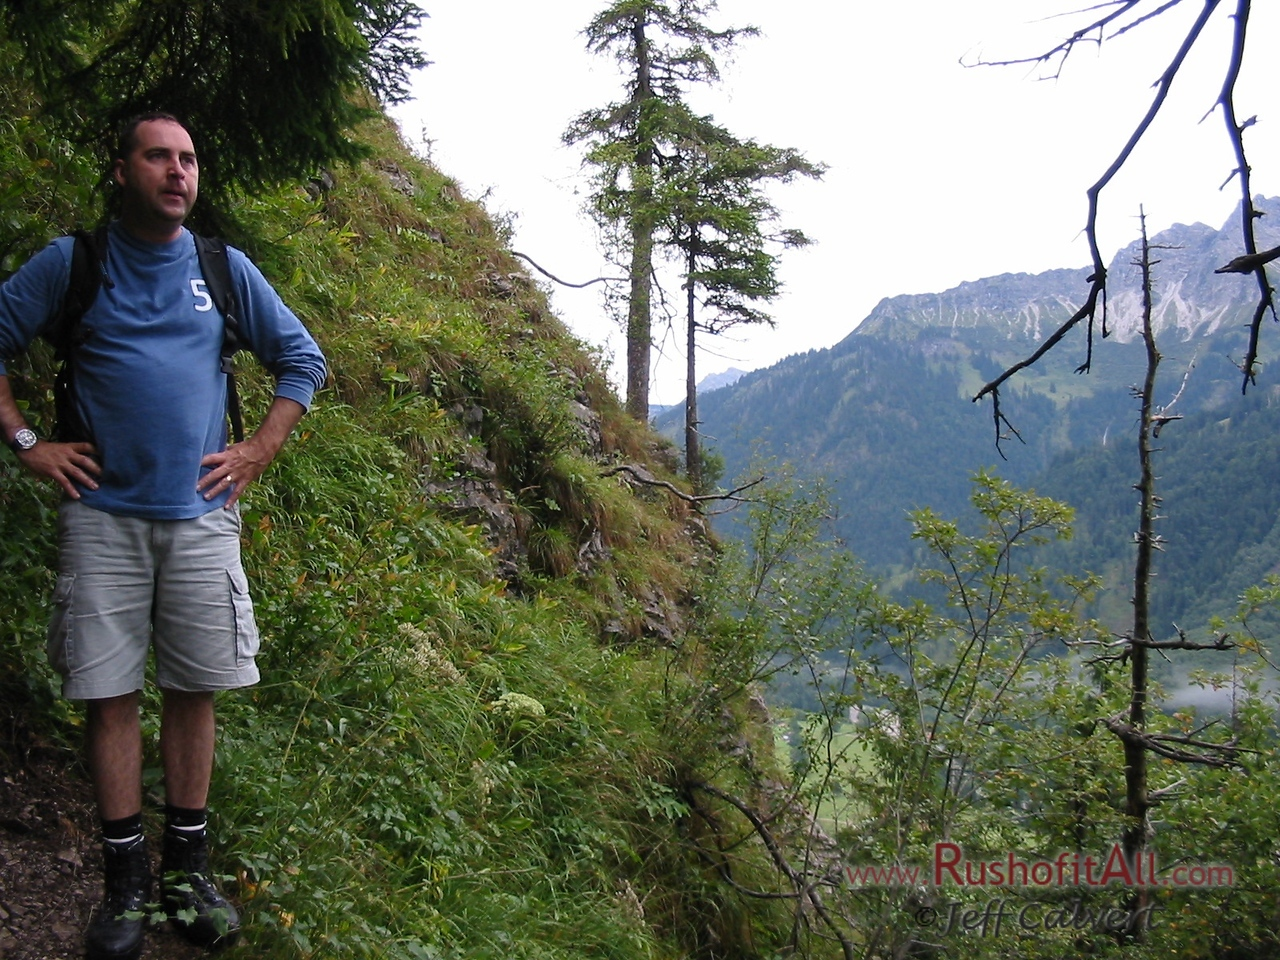 Keith on trail from Hinterstein to Zipfelsalpe.